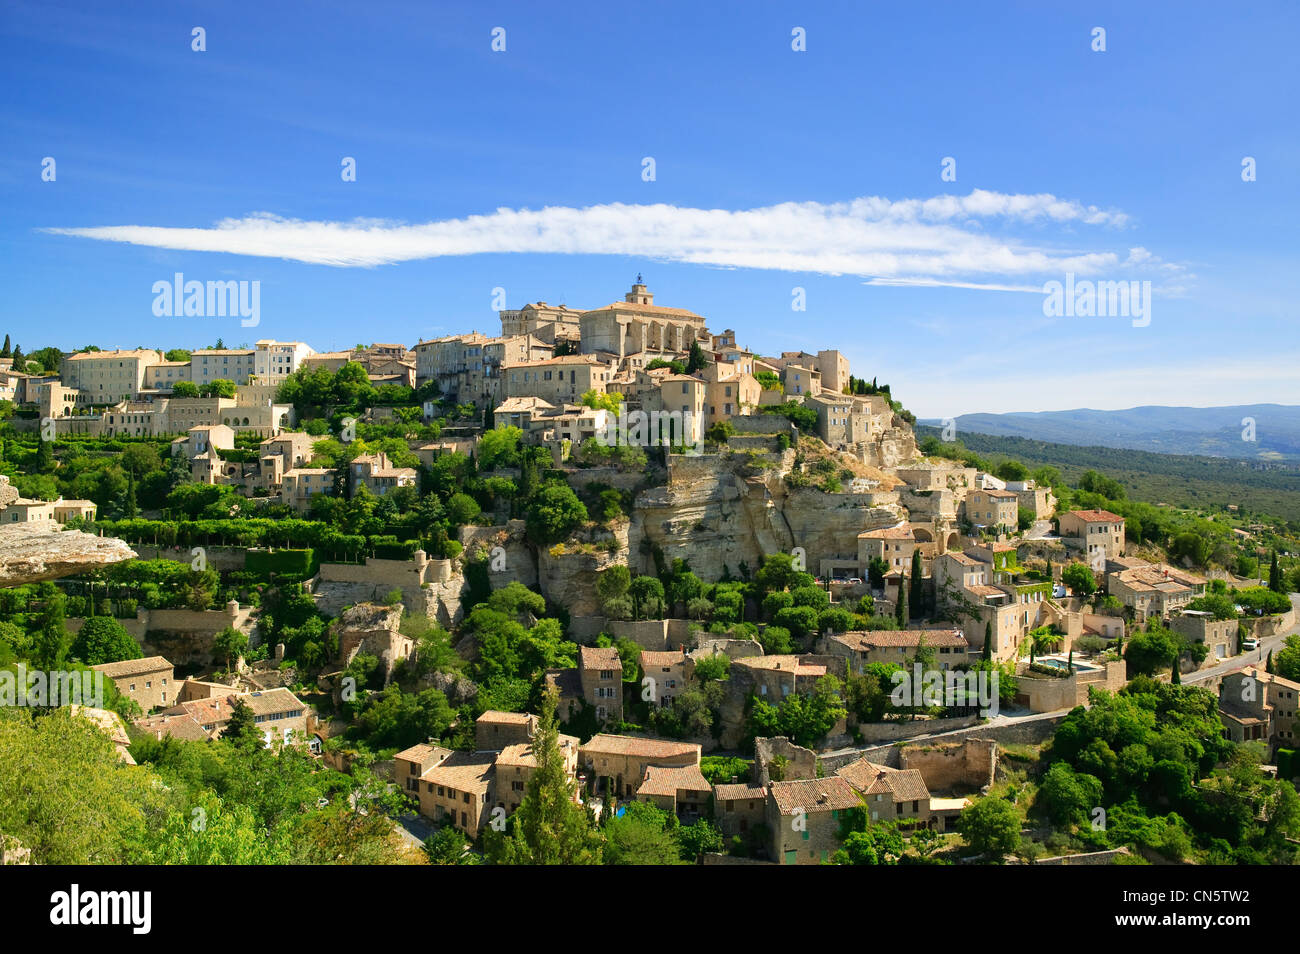 gordes vaucluse provence alpes cote d azur france stock photo royalty free image 47457790 alamy. Black Bedroom Furniture Sets. Home Design Ideas